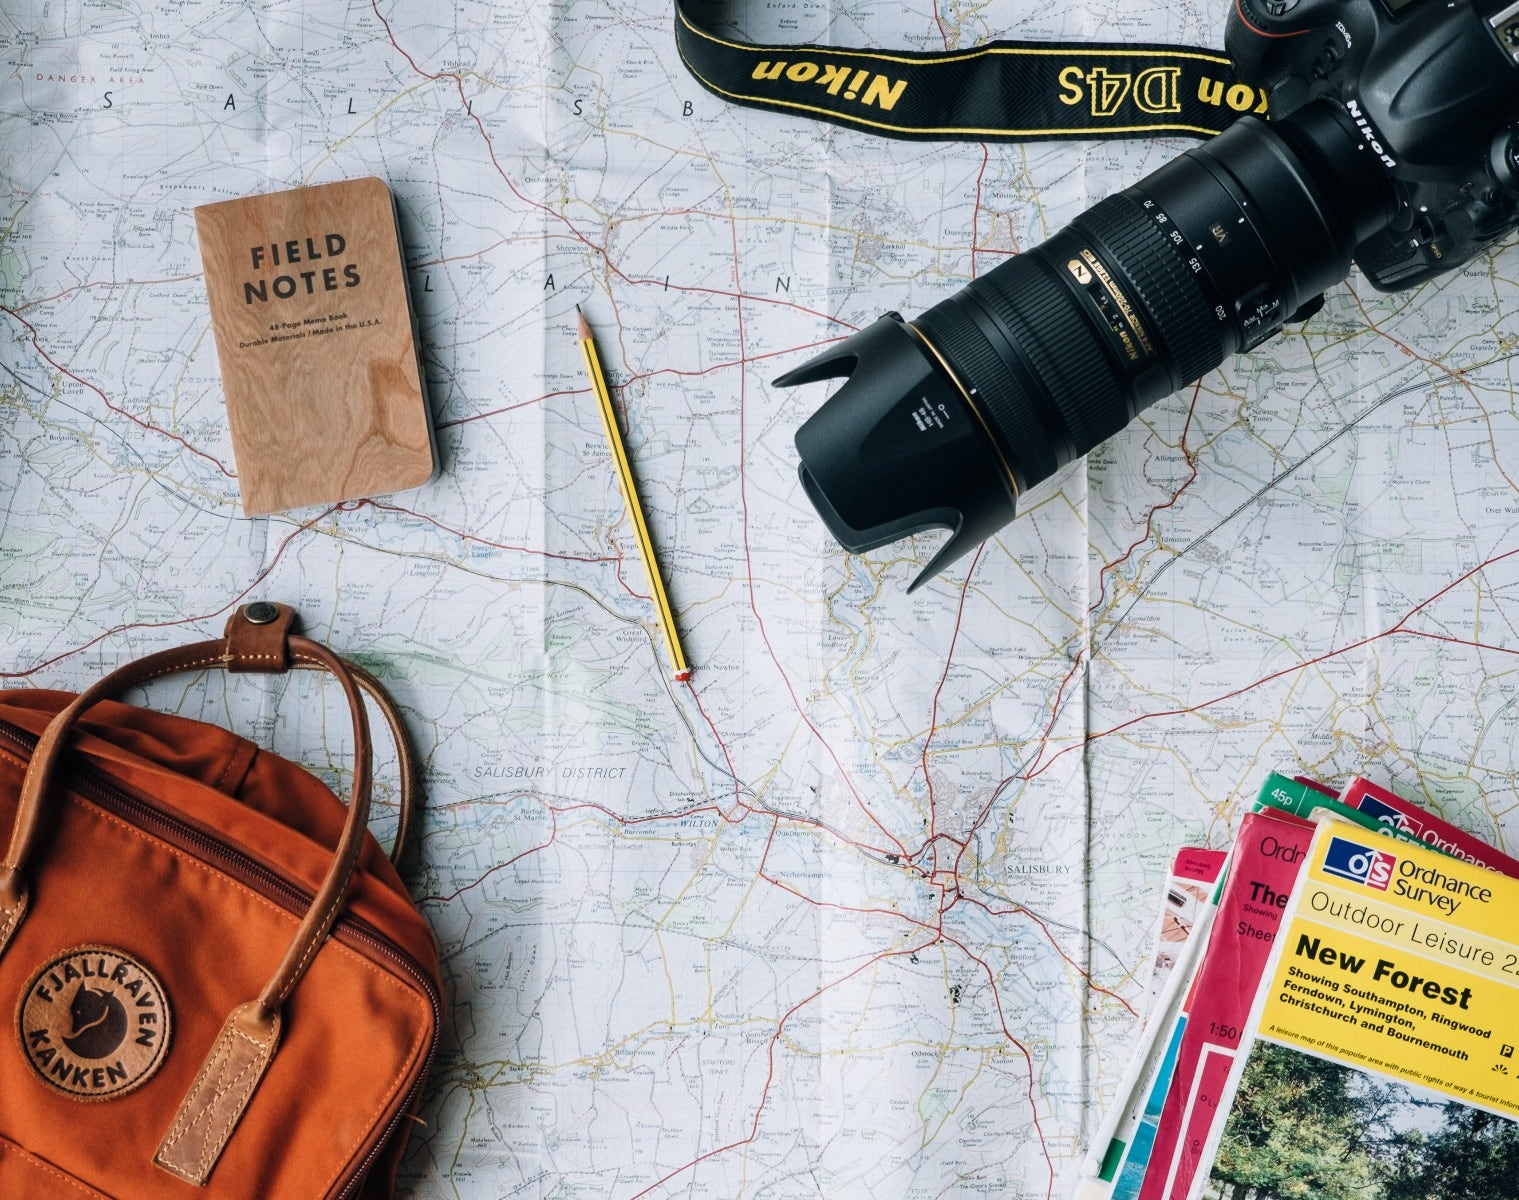 Planning a photography trip